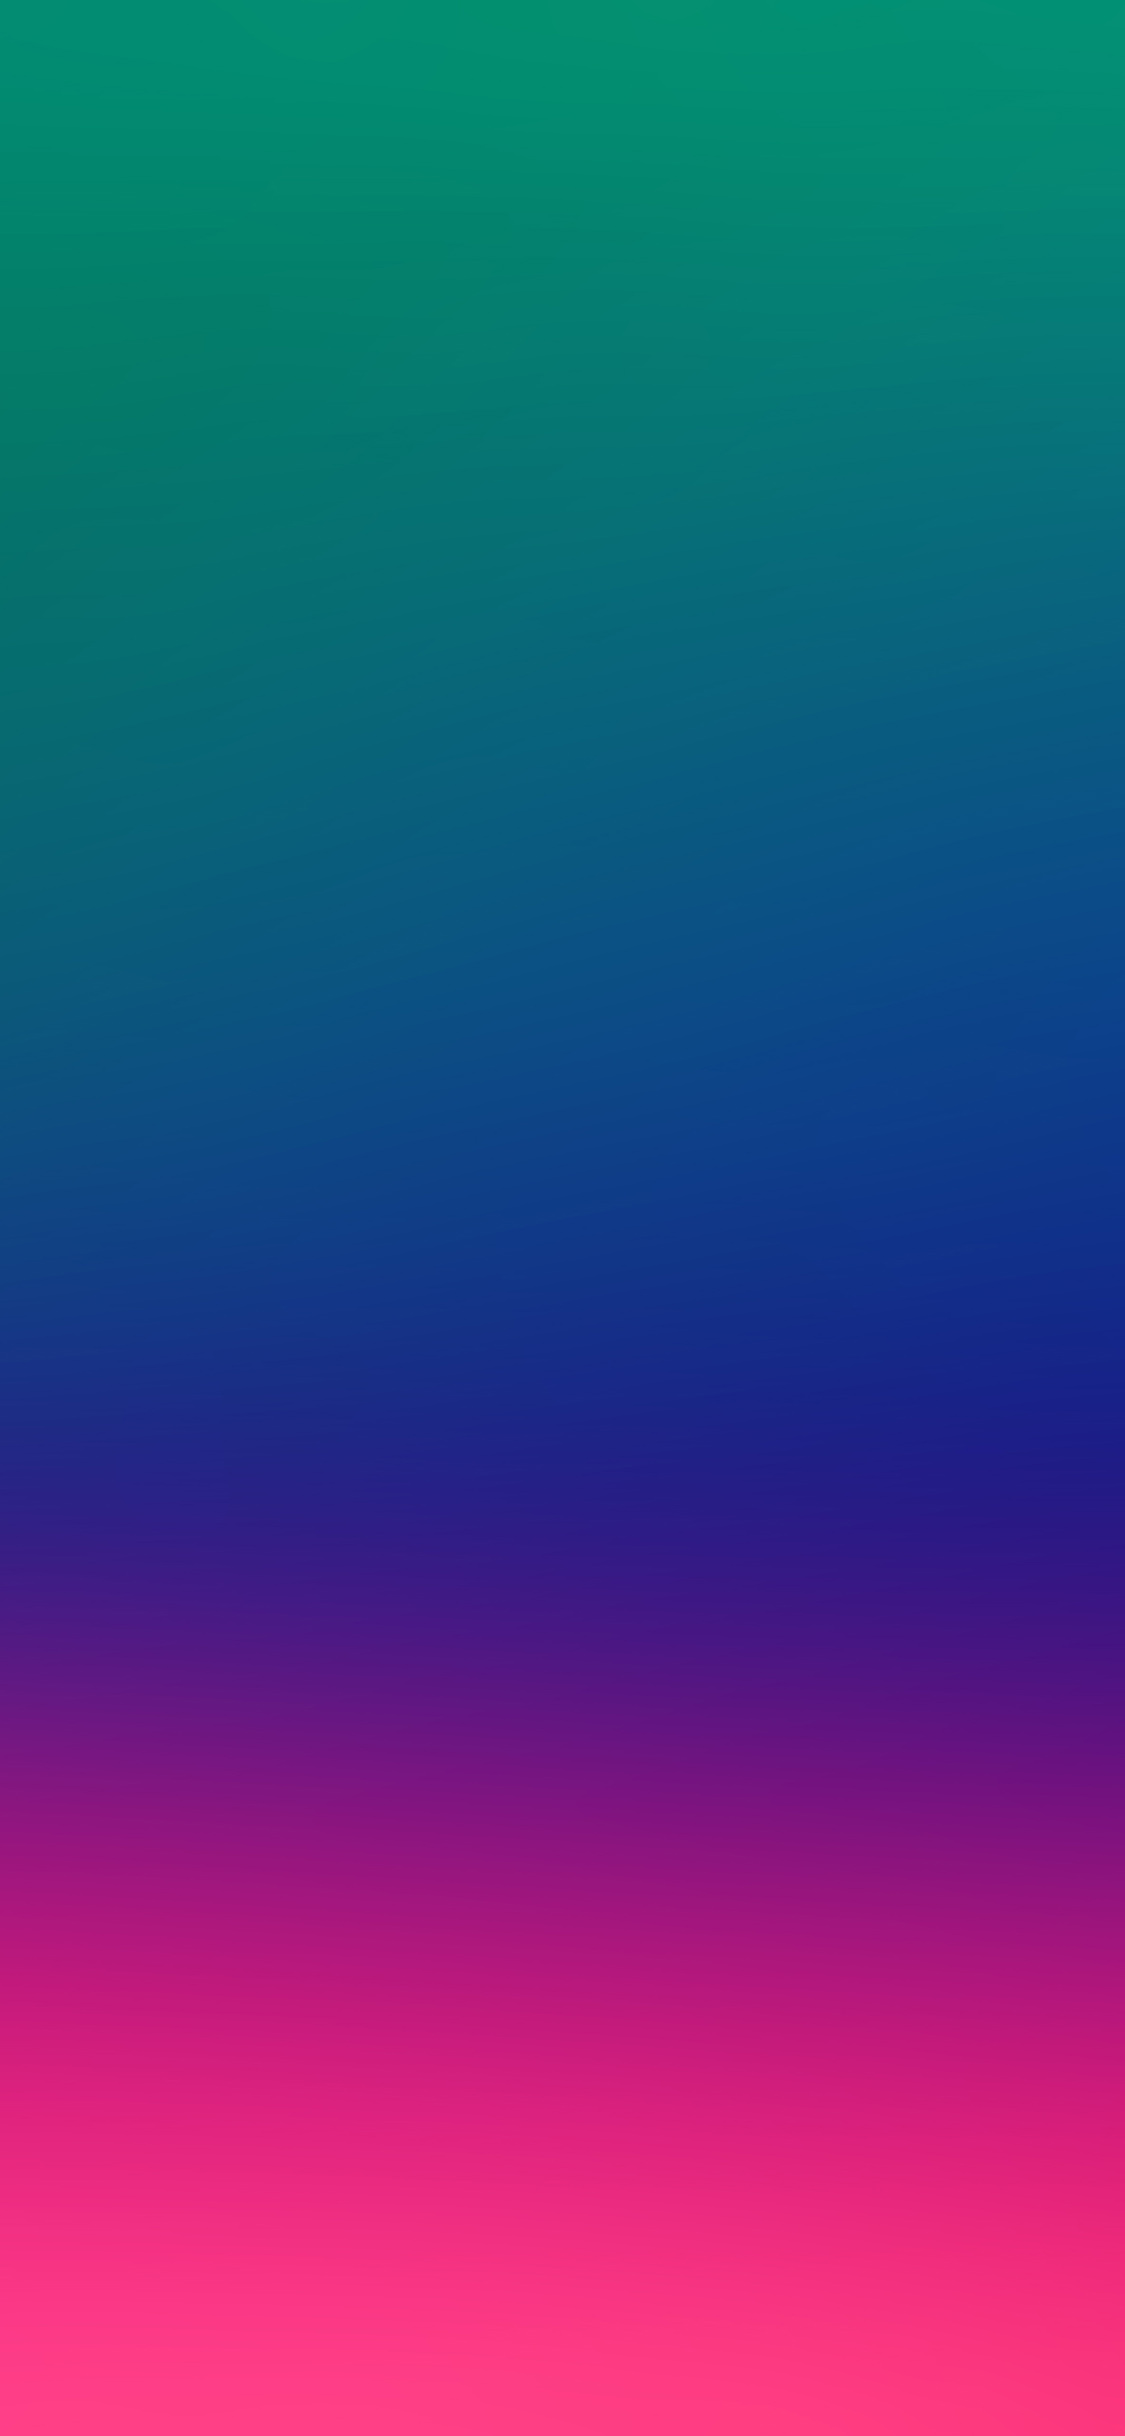 Ipad Pro Wallpaper Hd Sg12 Blue Pink Color Gradation Blur Papers Co